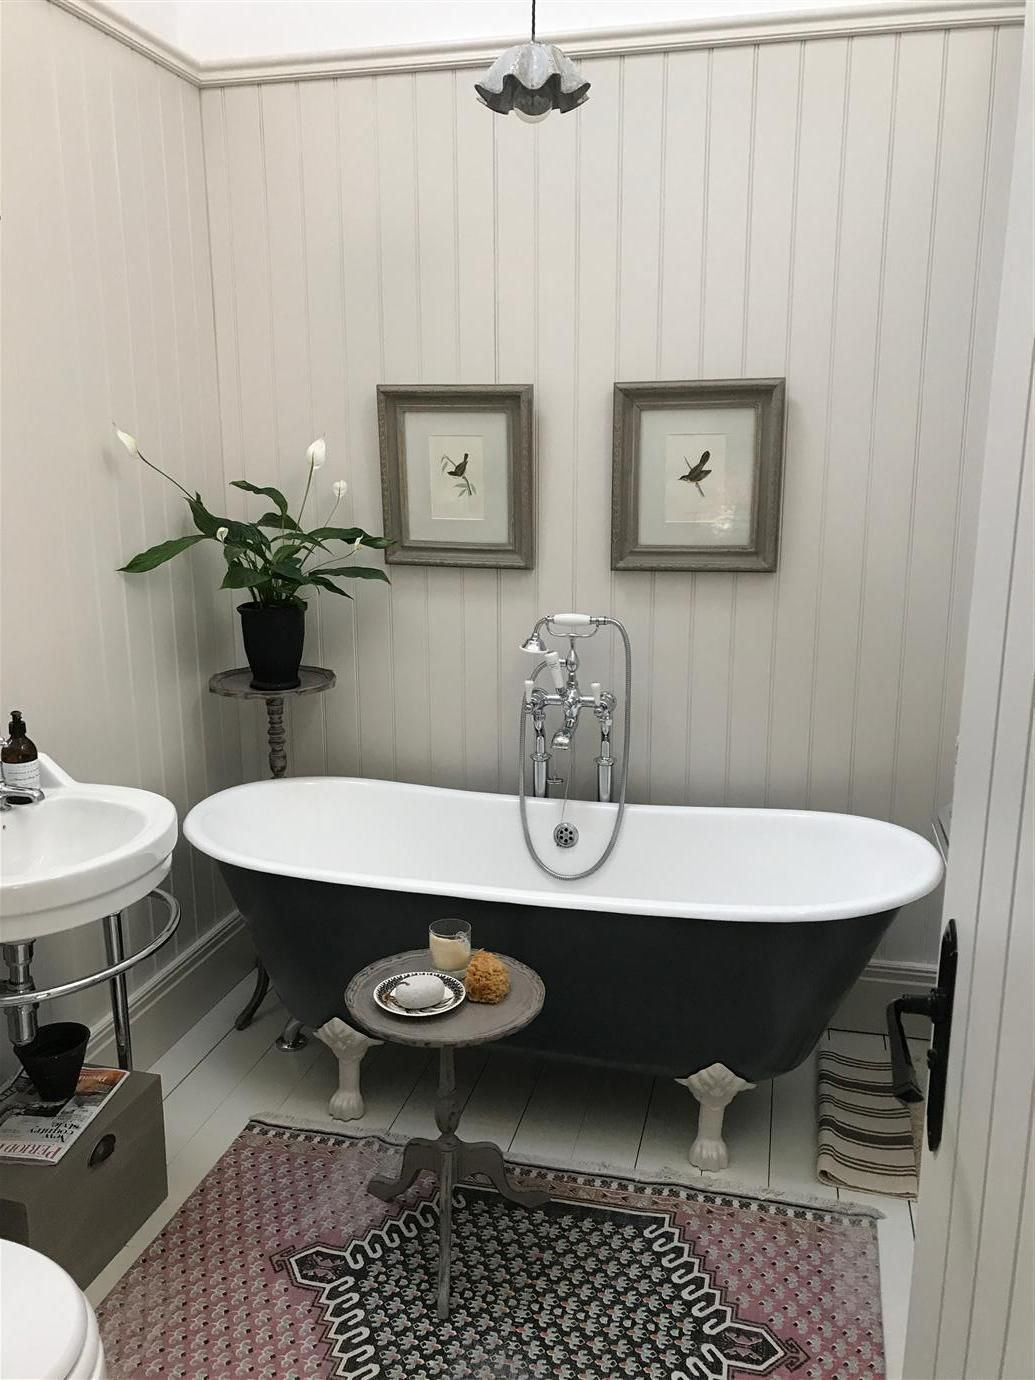 Farrow And Ball Skimming Stone Skimming Stone Walls And Down Pipe Tub Farrow And Ball